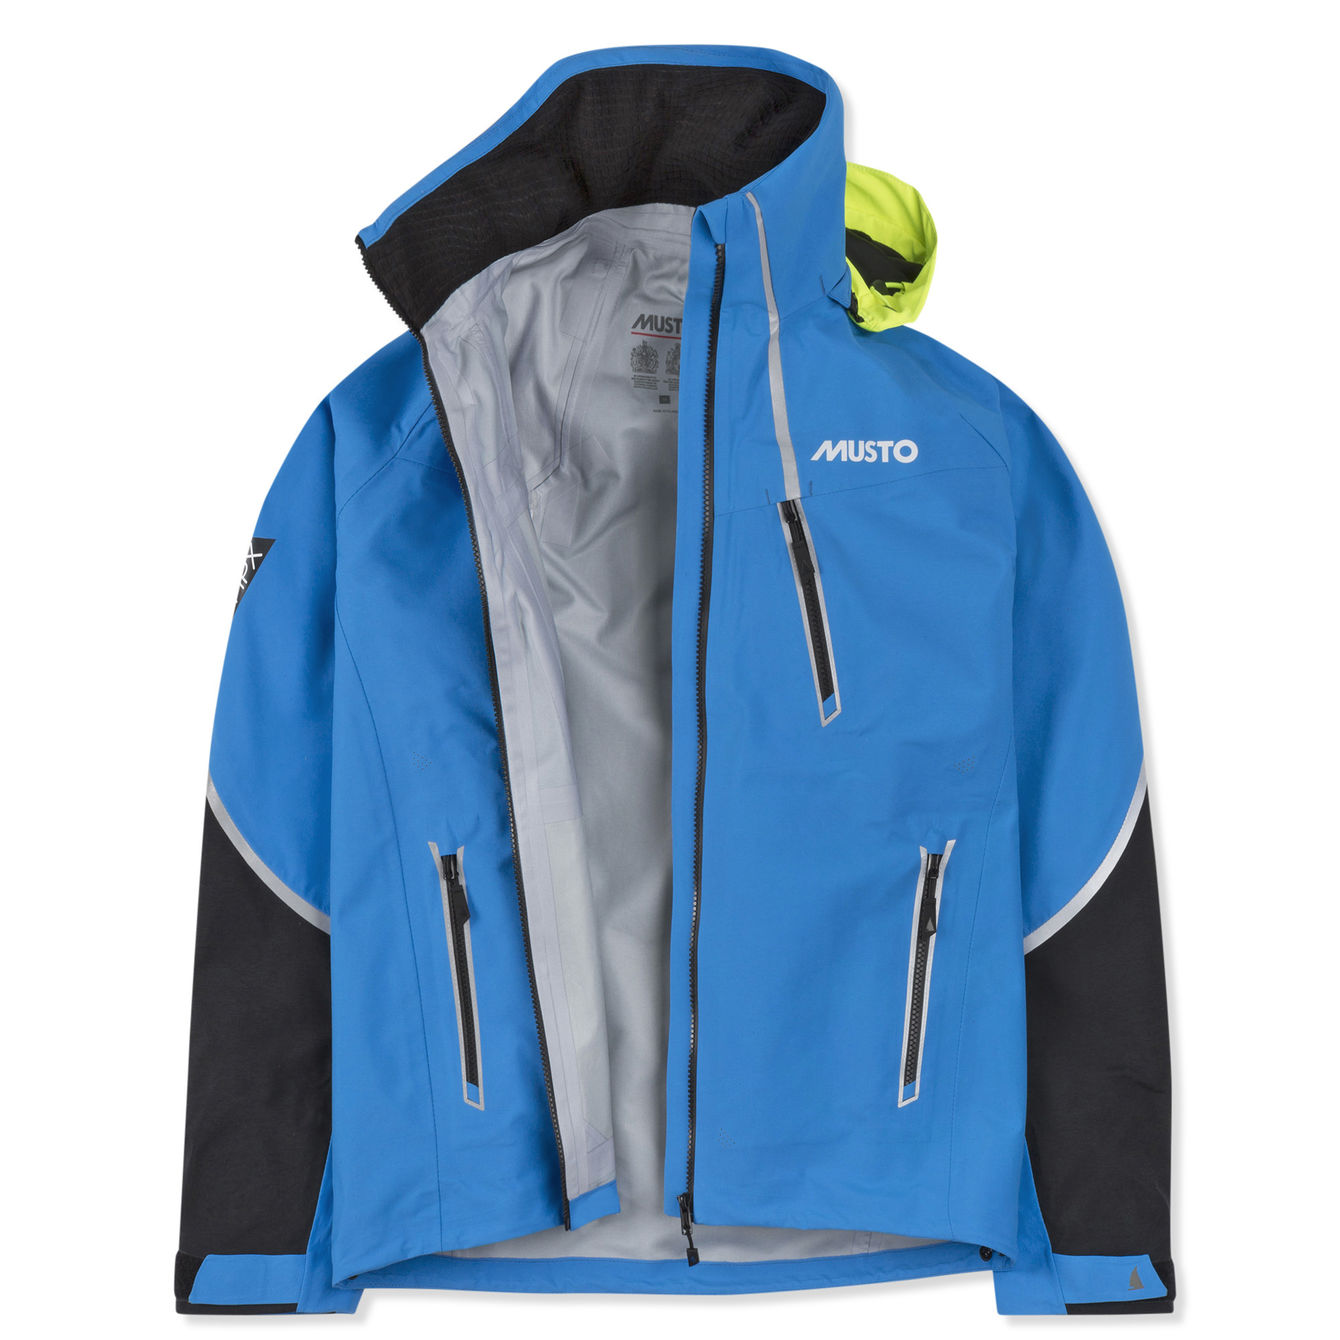 047537754 men´s sailing jackets / unisex : Musto MPX Pro Race Jacket